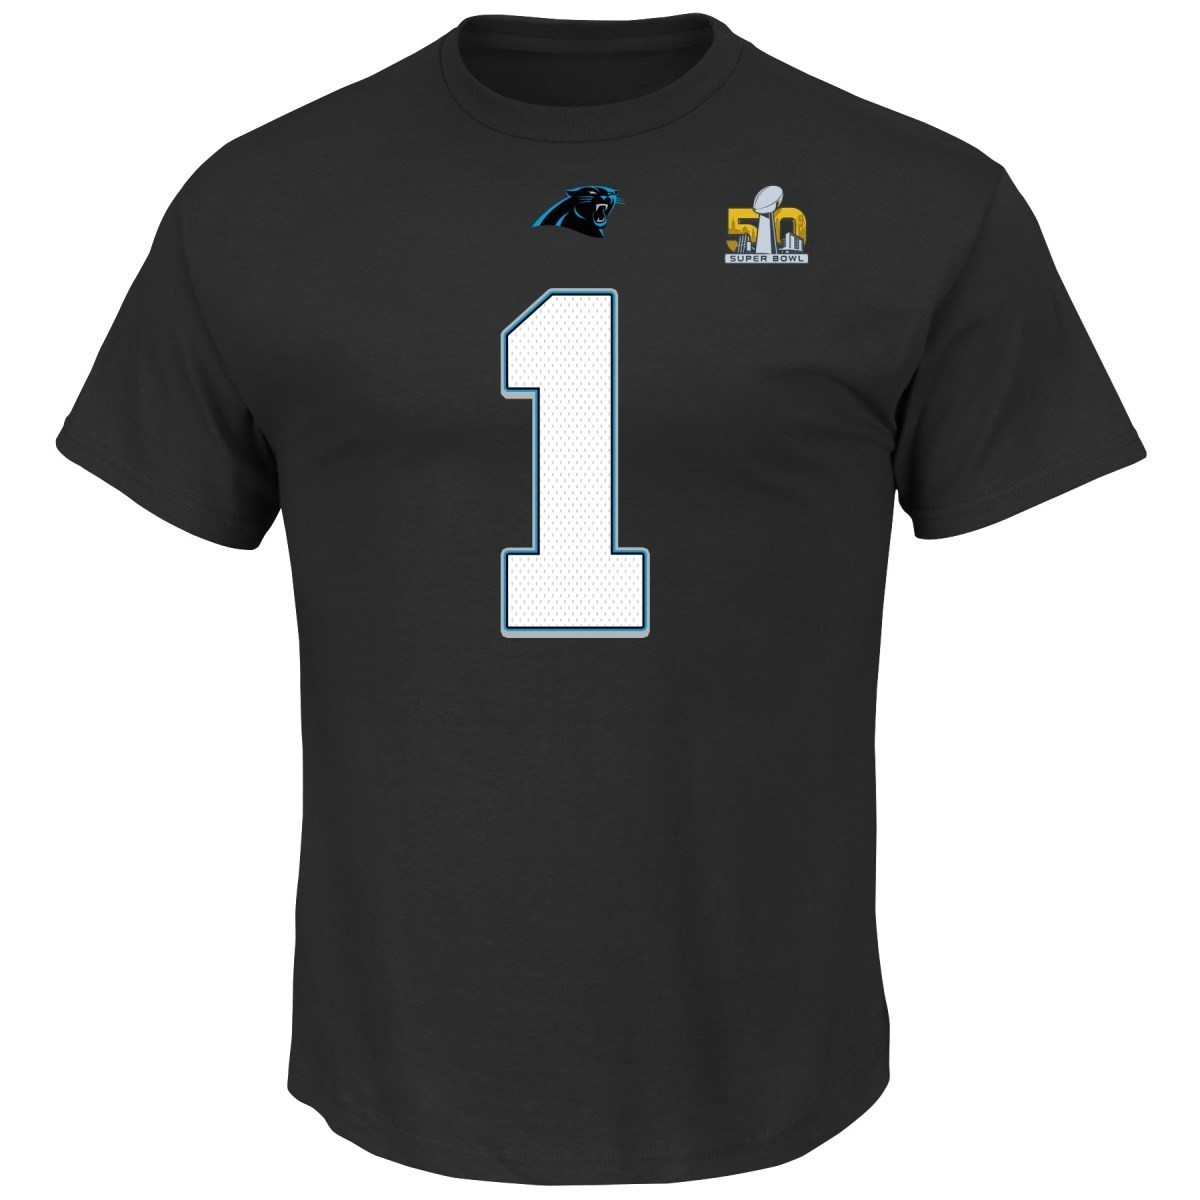 bf672c54e7600 Details about Cam Newton Carolina Panthers Majestic NFL Super Bowl 50  Player T-shirt